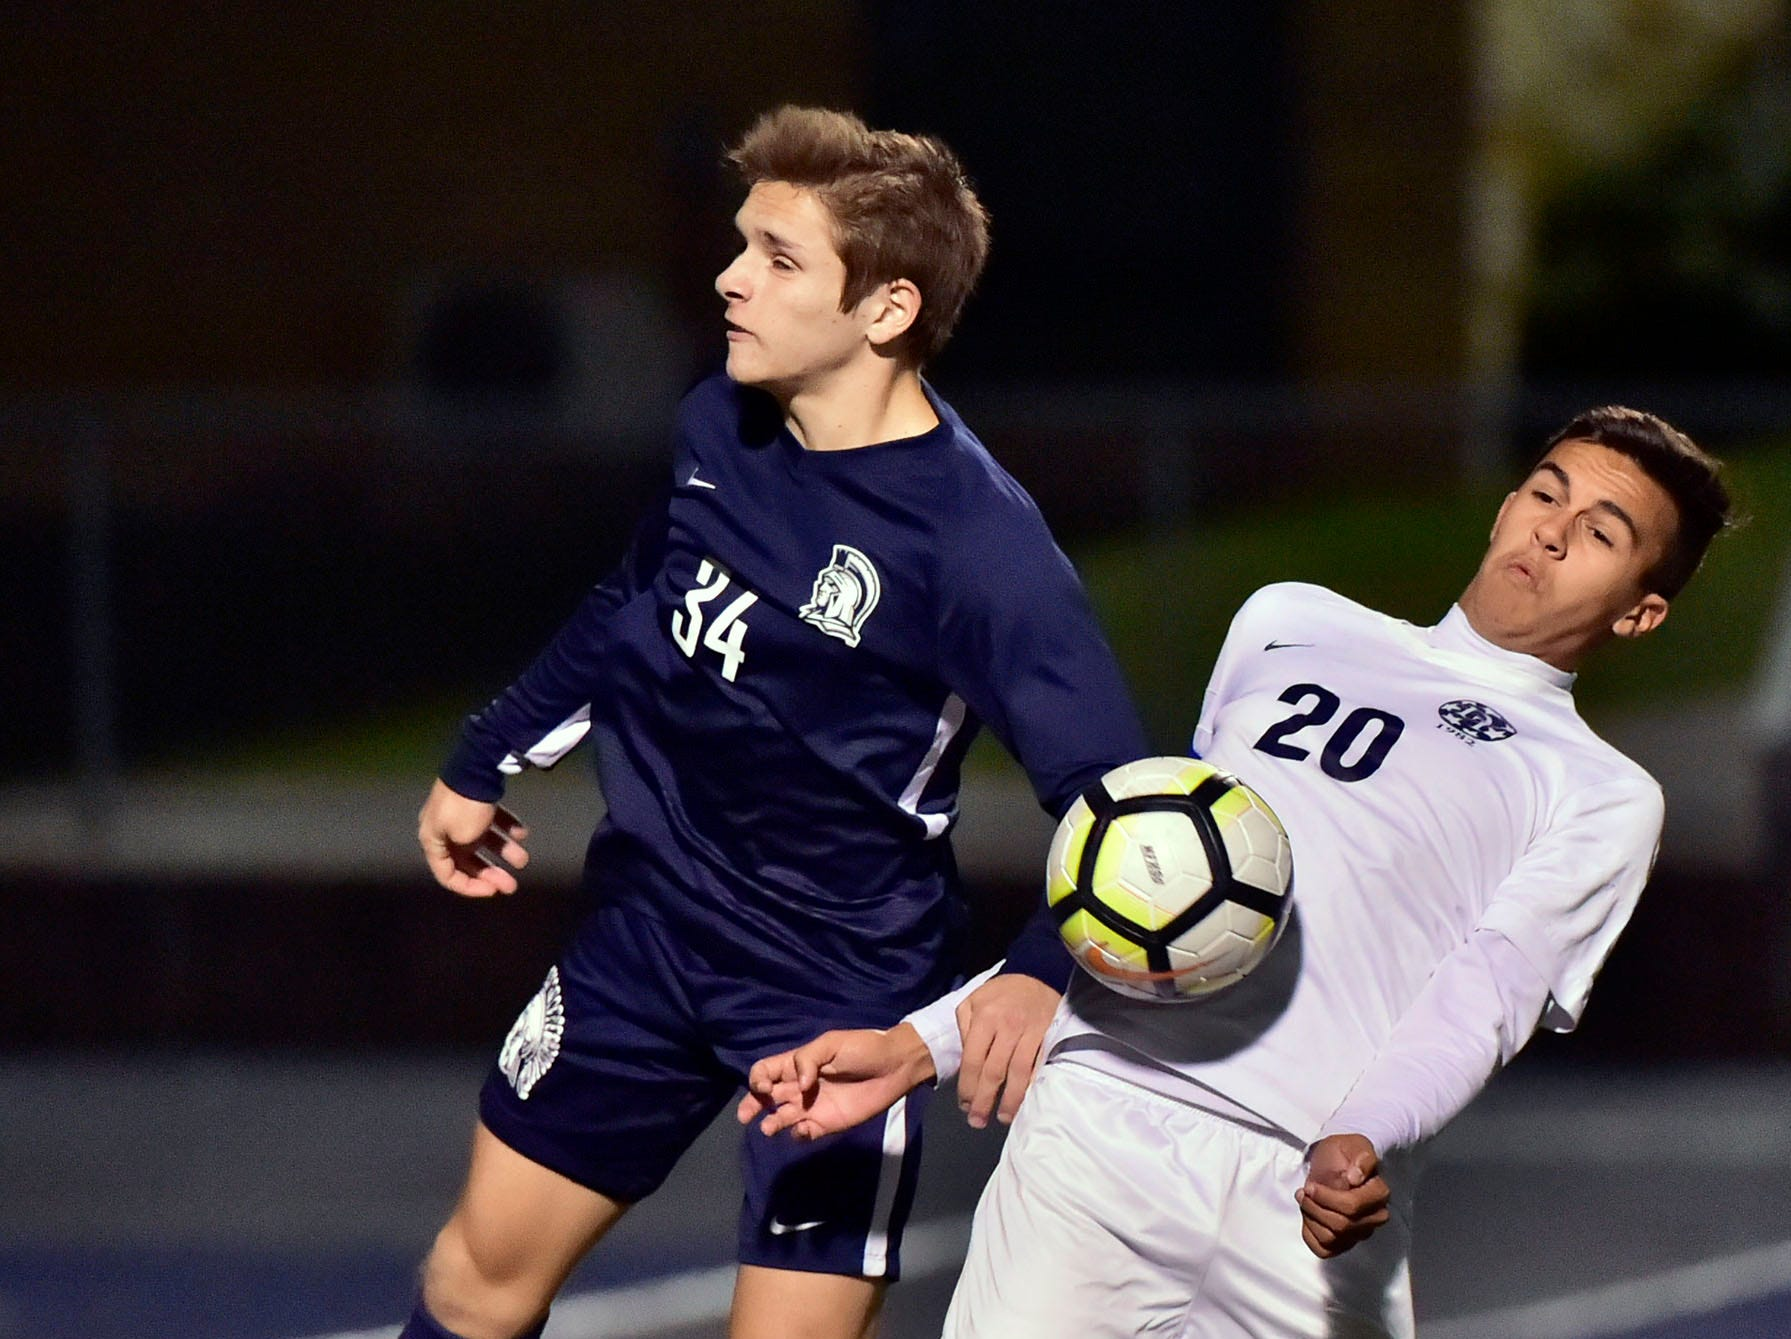 Chambersburg's Garrick Hill (34) heads the ball in front of Gabe Wunderlich (20) of Dallastown. Chambersburg lost a first round D3 soccer match to Dallastown 2-1 on Tuesday, Oct. 23, 2018.